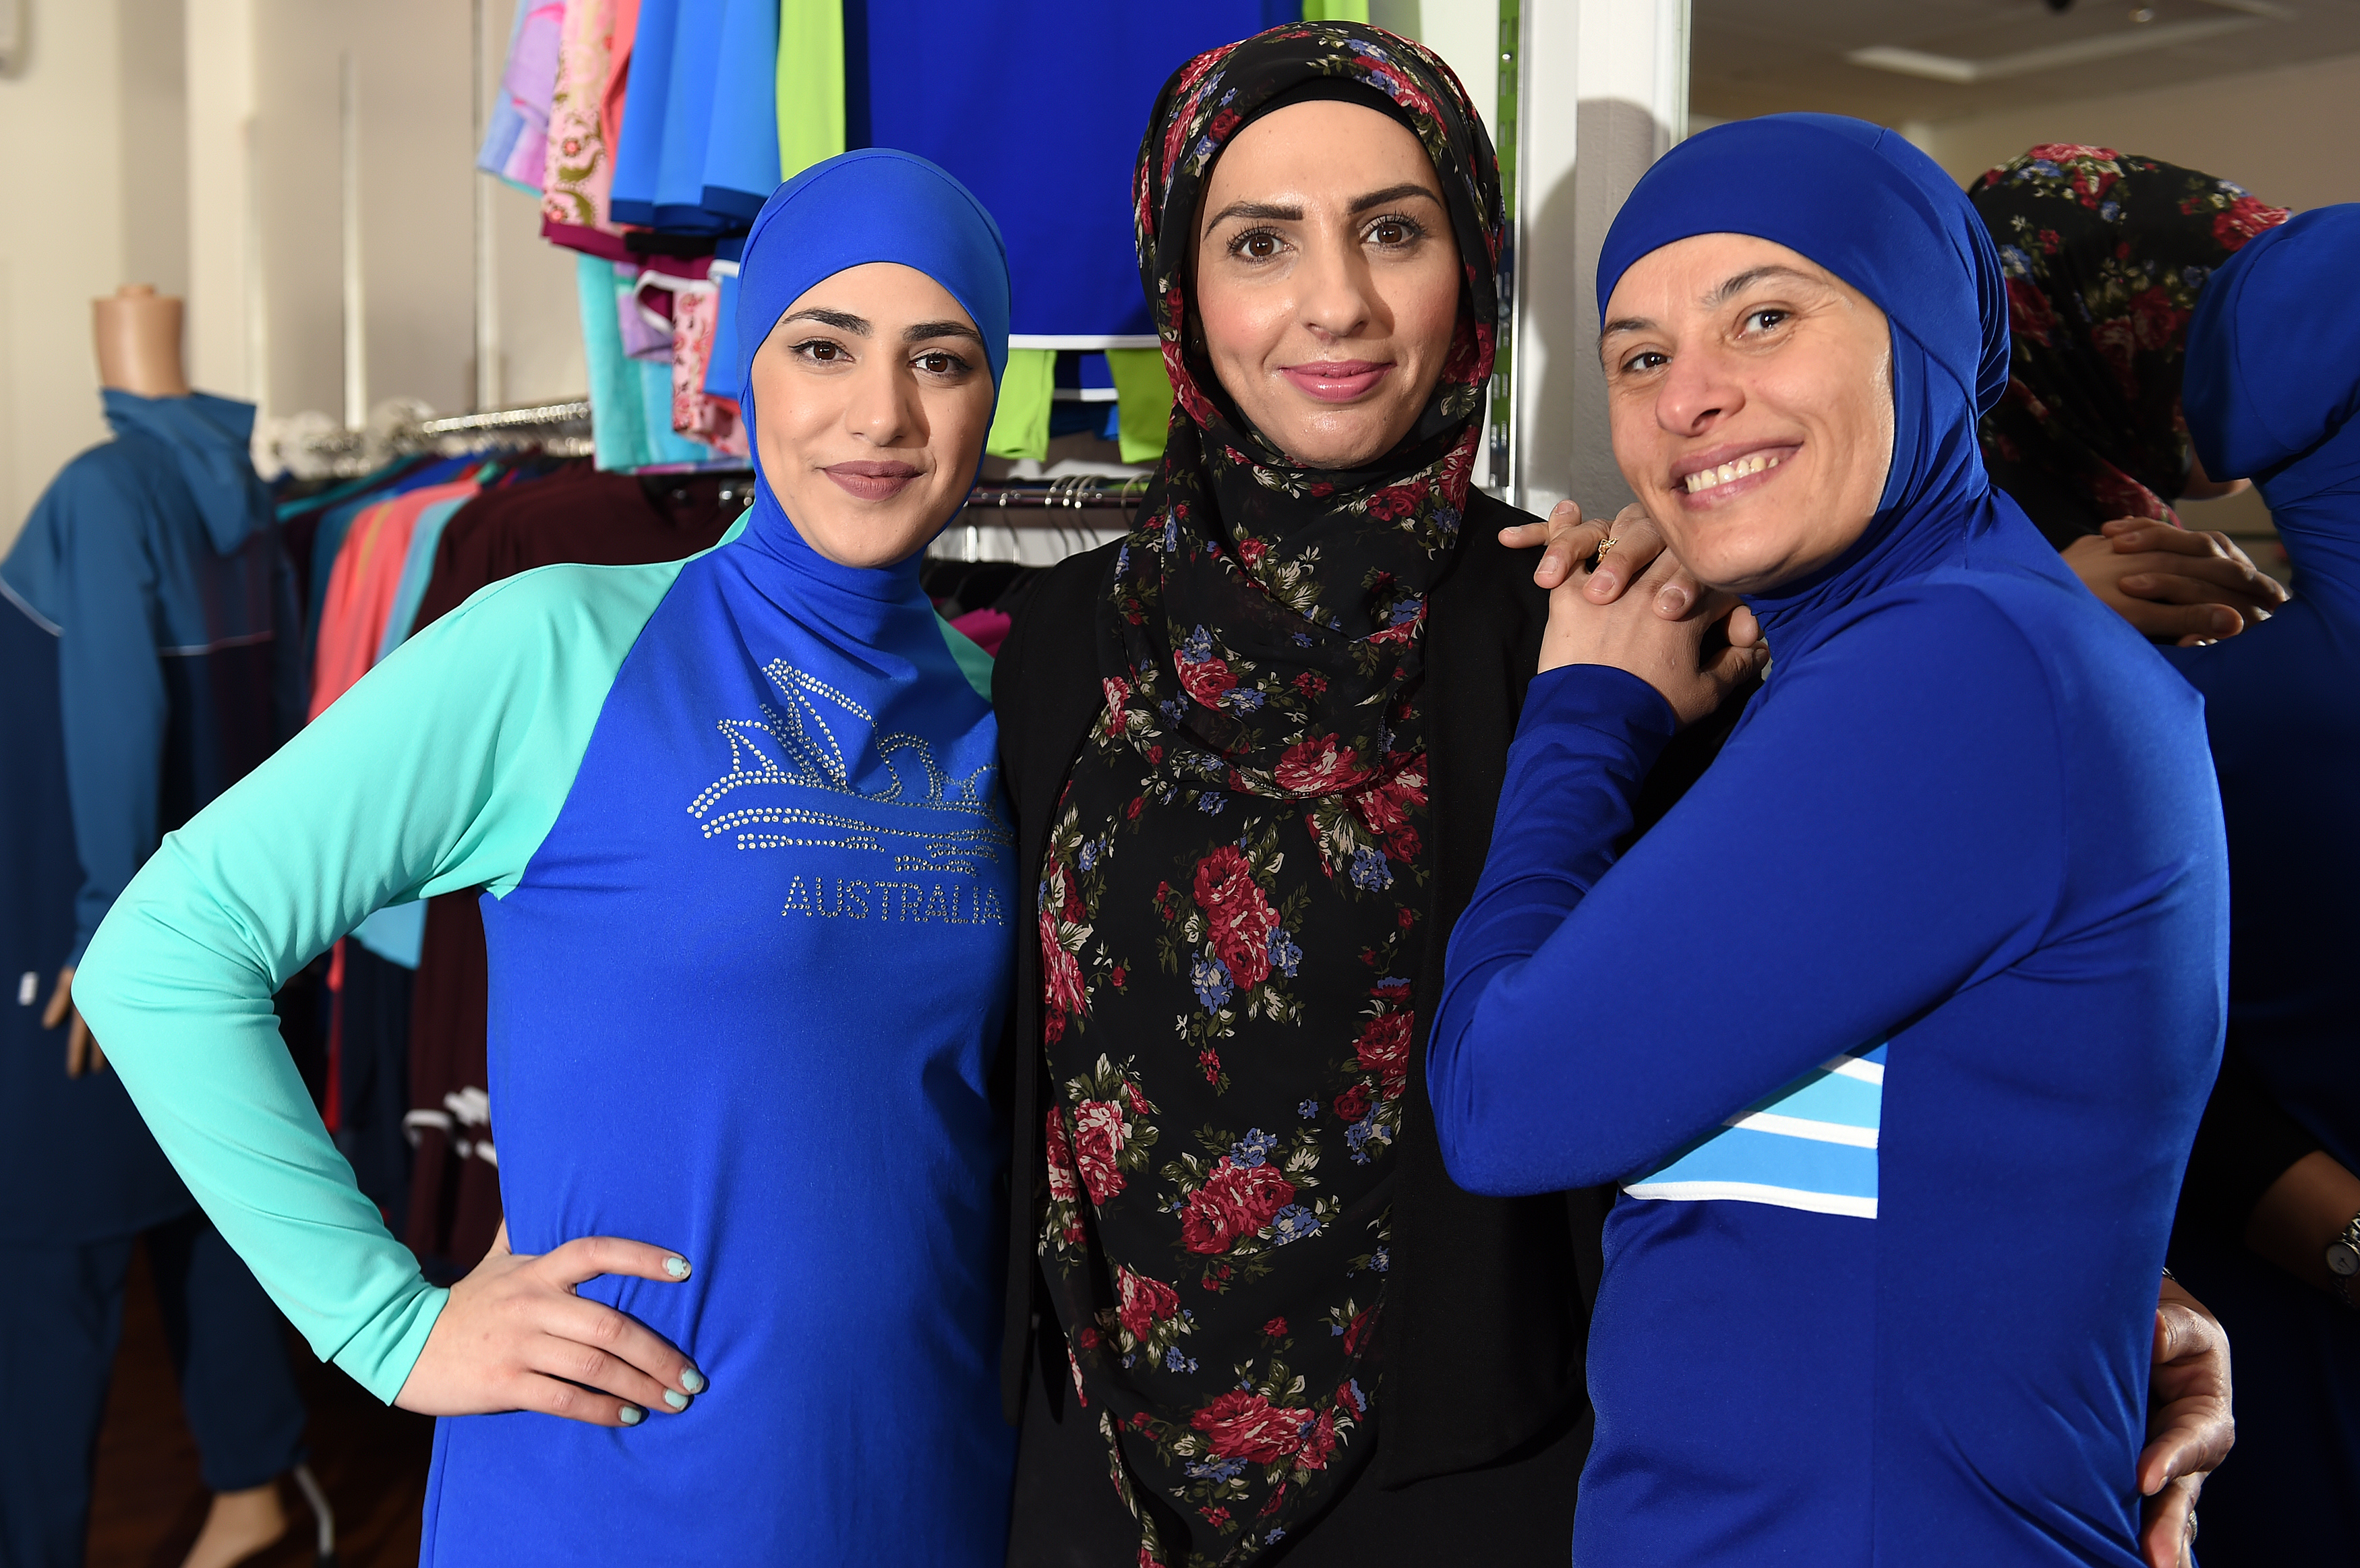 Muslim models display burkini swimsuits at a shop in western Sydney on August 19, 2016.